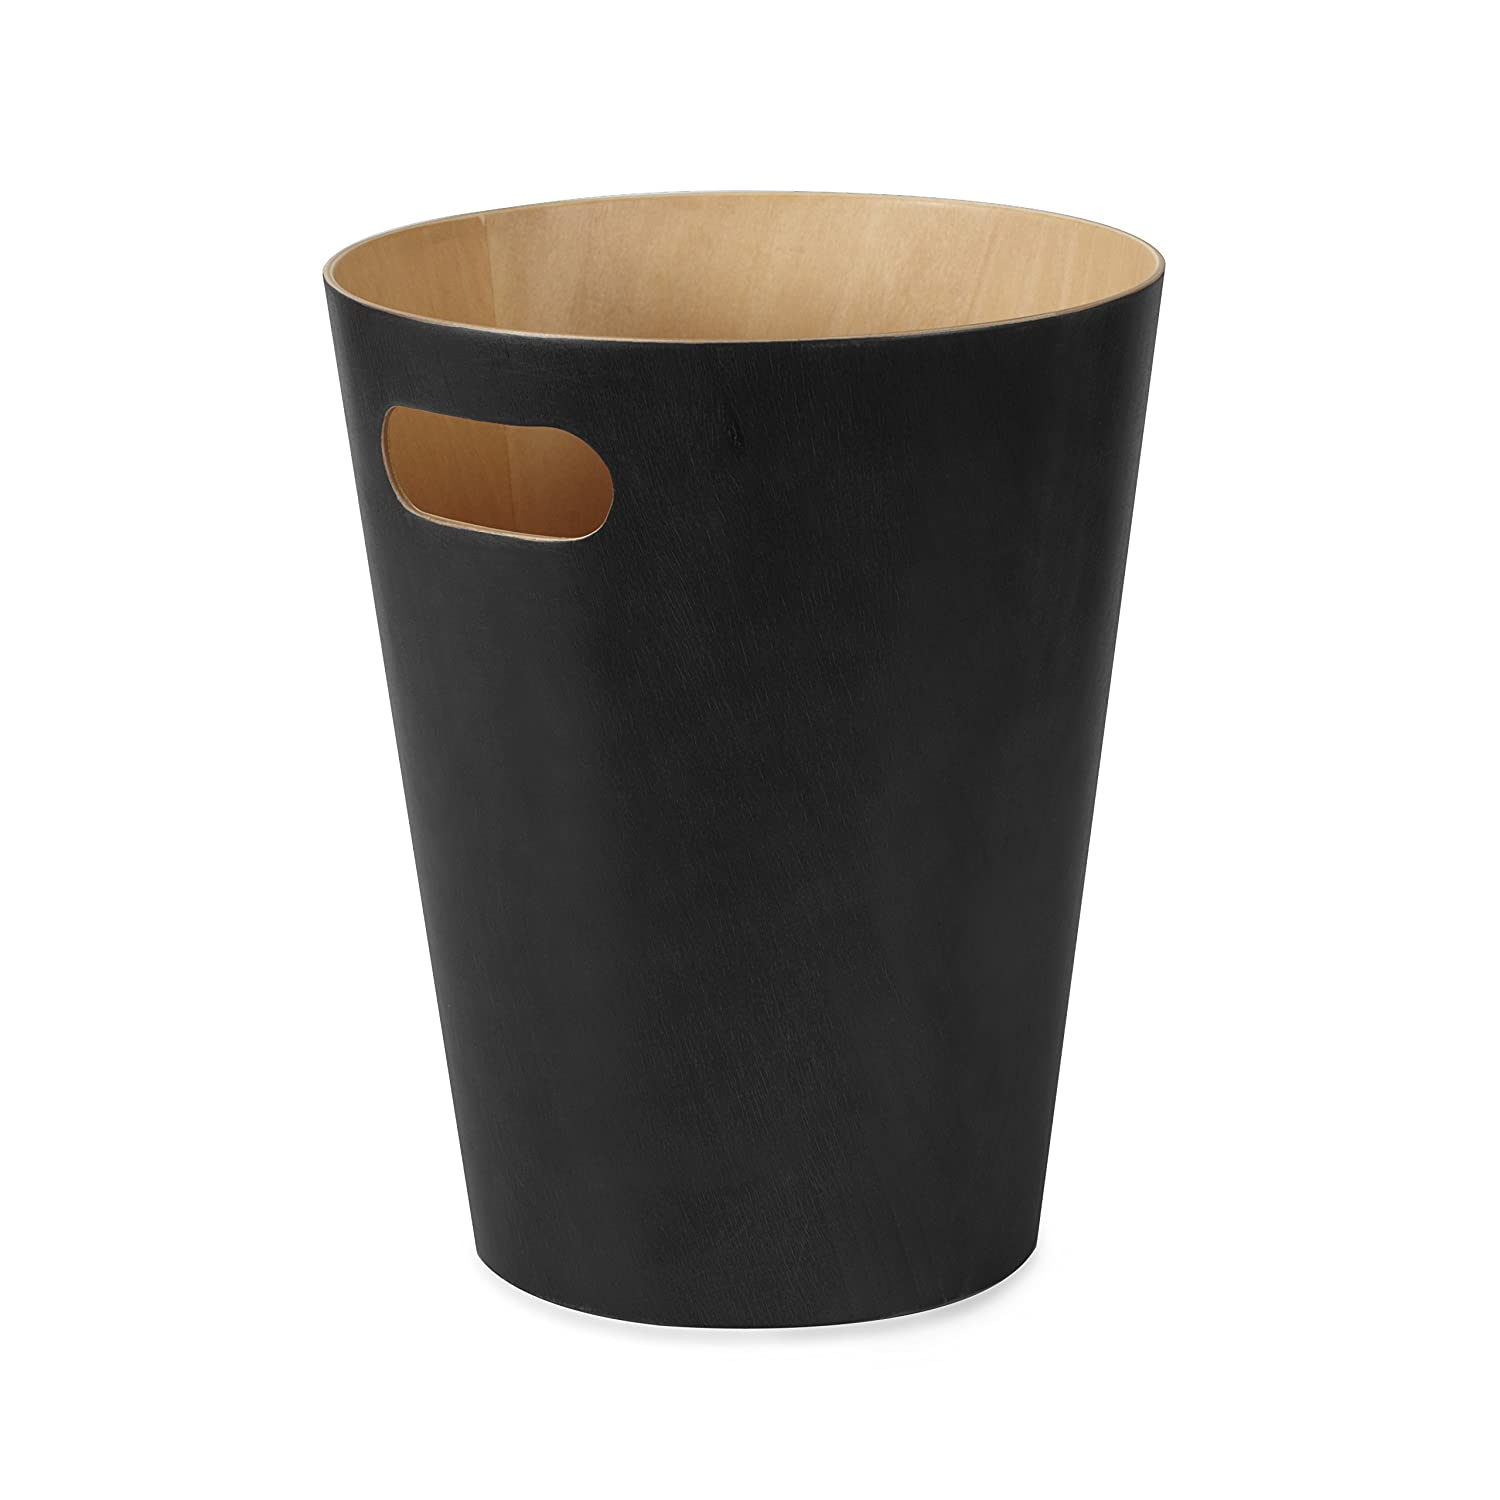 Umbra, Black Woodrow, 2 Gallon Modern Wooden Trash Can Wastebasket or Recycling Bin for Home or Office